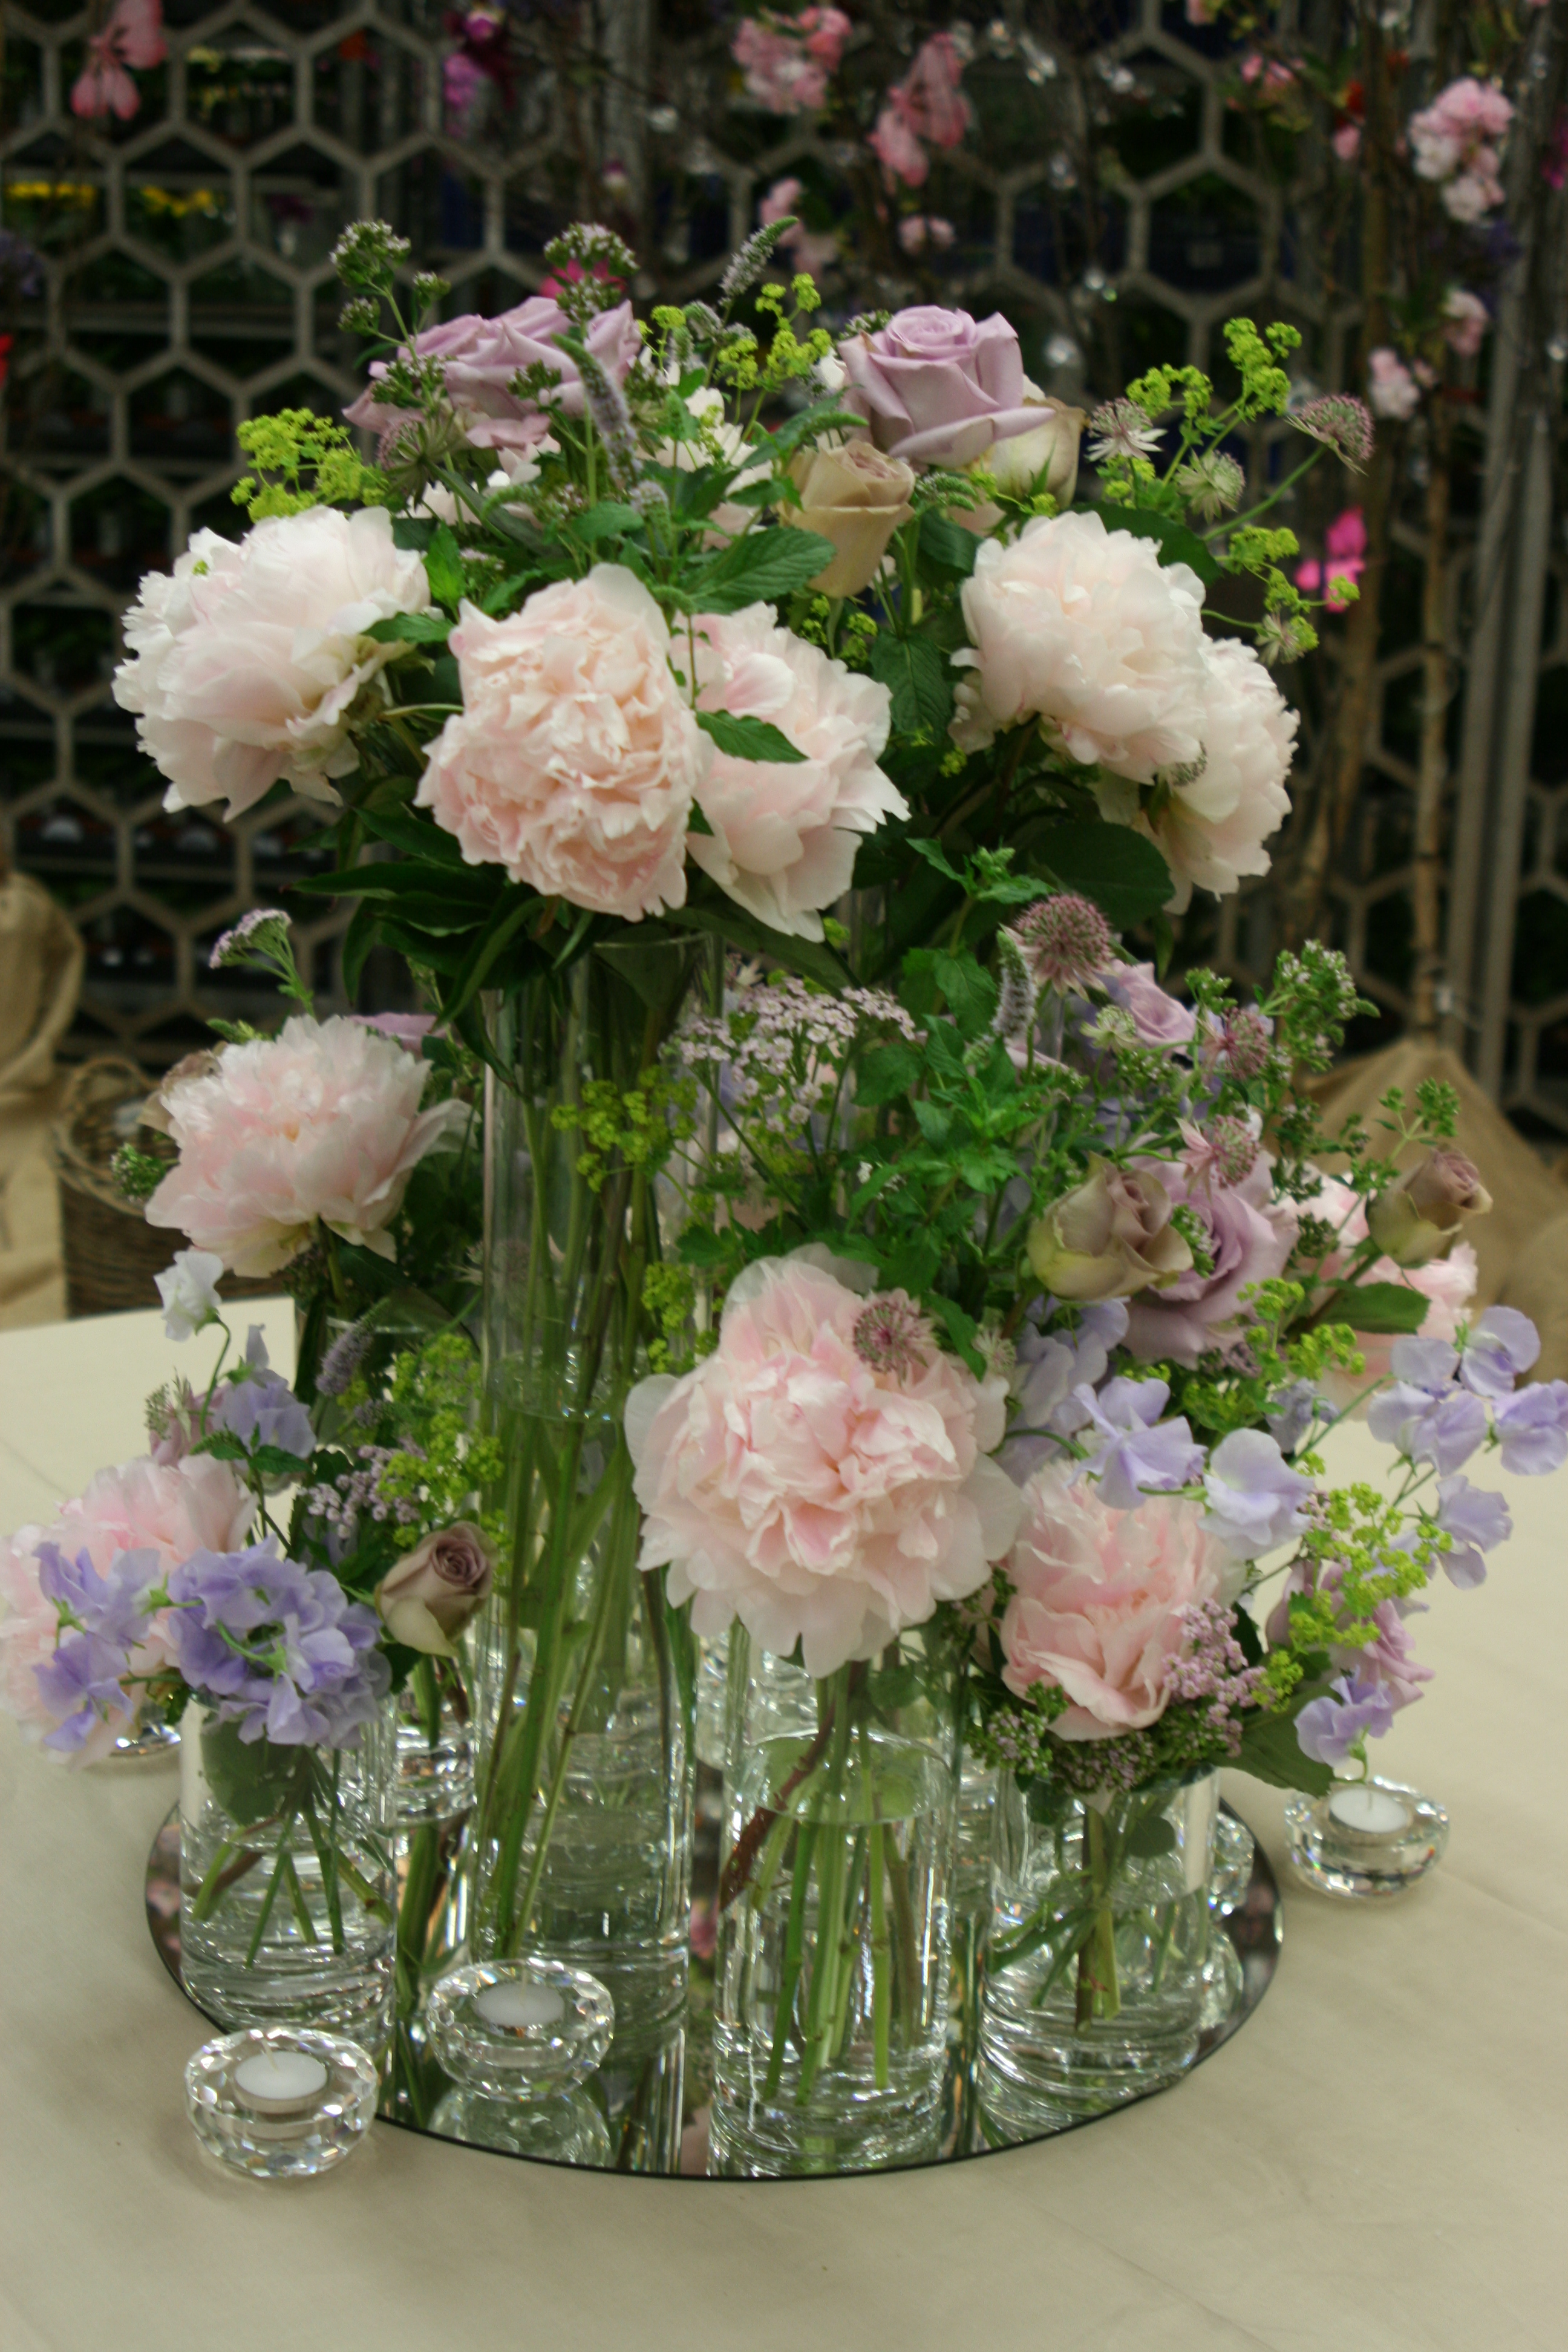 Floral Arrangements For Weddings Prices